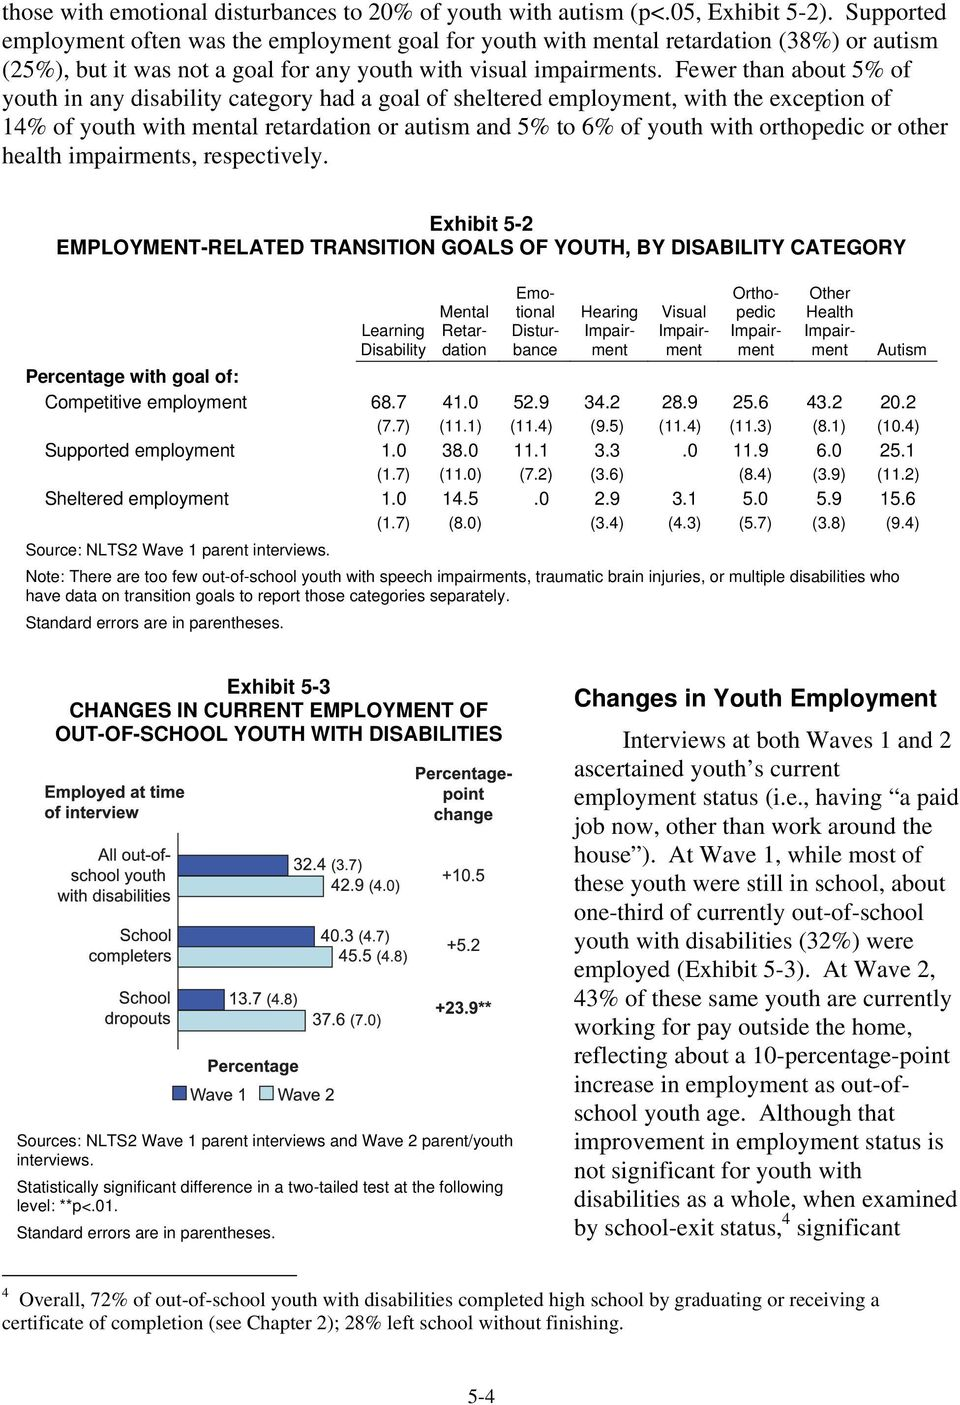 Fewer than about 5% of youth in any disability category had a goal of sheltered employment, with the exception of 14% of youth with mental retardation or autism and 5% to 6% of youth with orthopedic